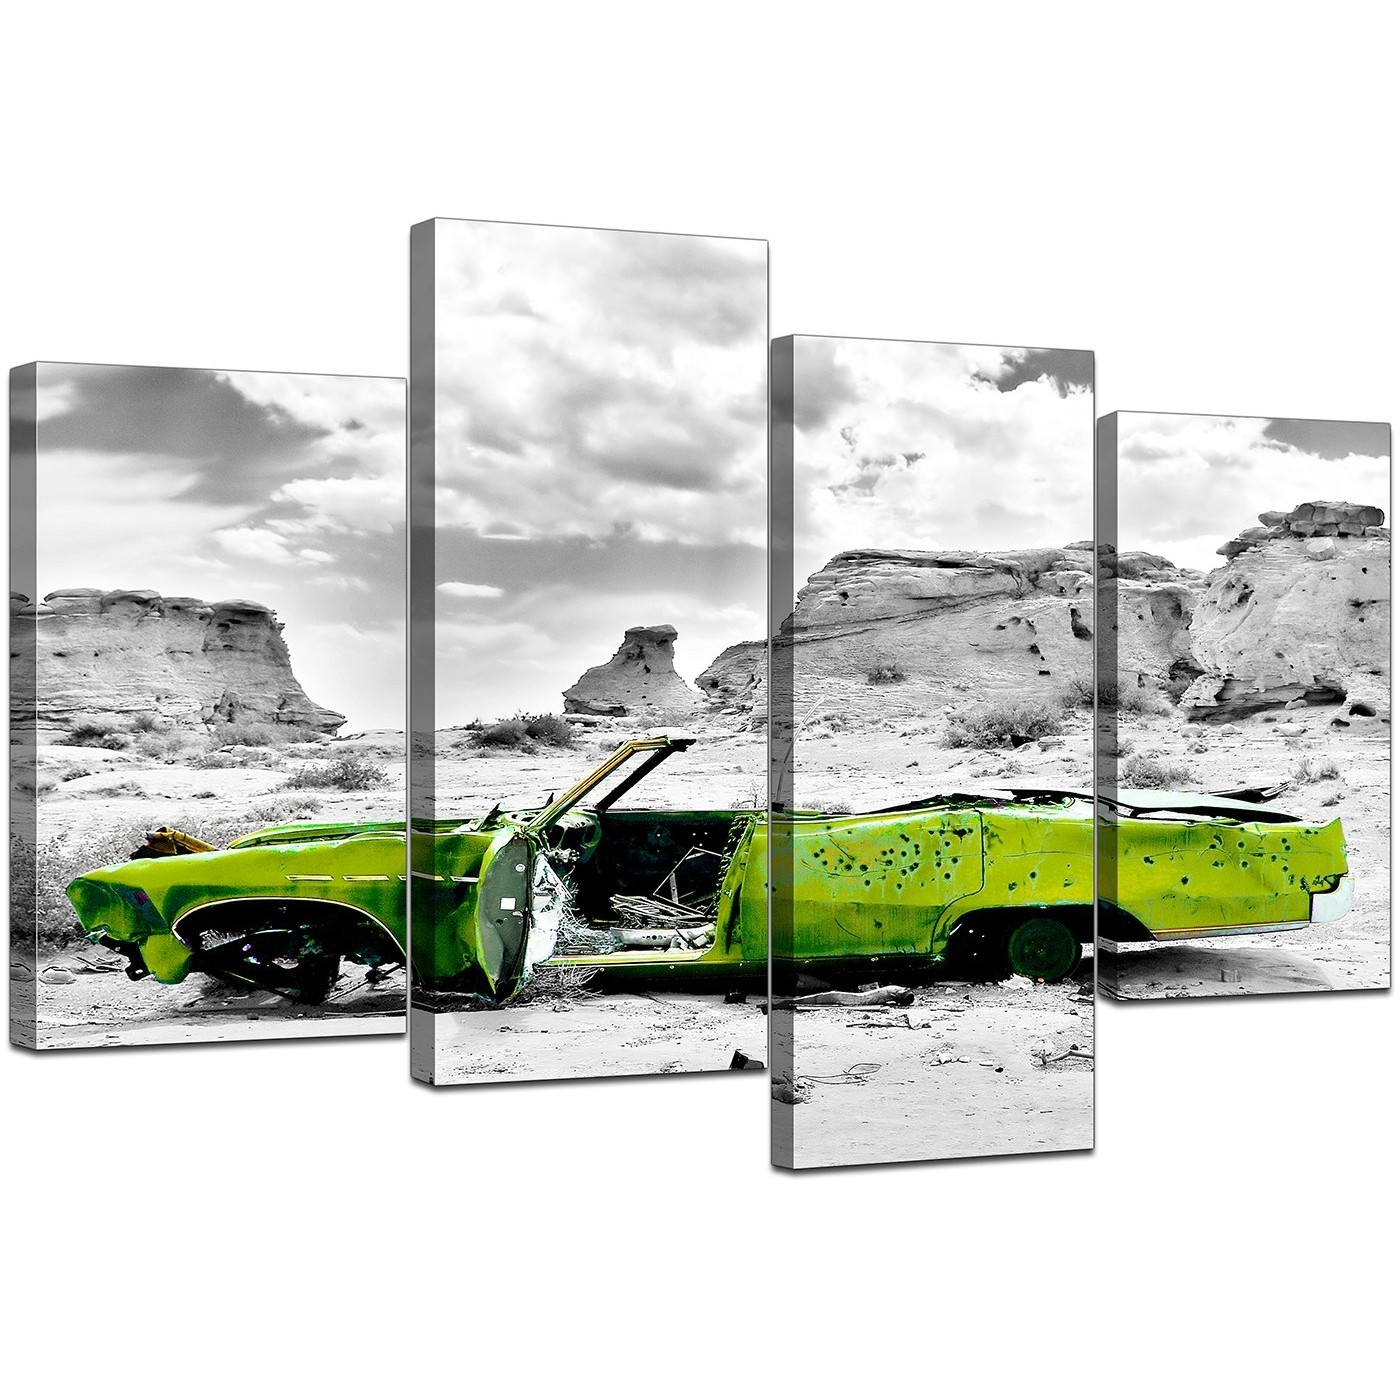 Canvas Art Of Green Car In Black & White For Your Office with Car Canvas Wall Art (Image 11 of 20)